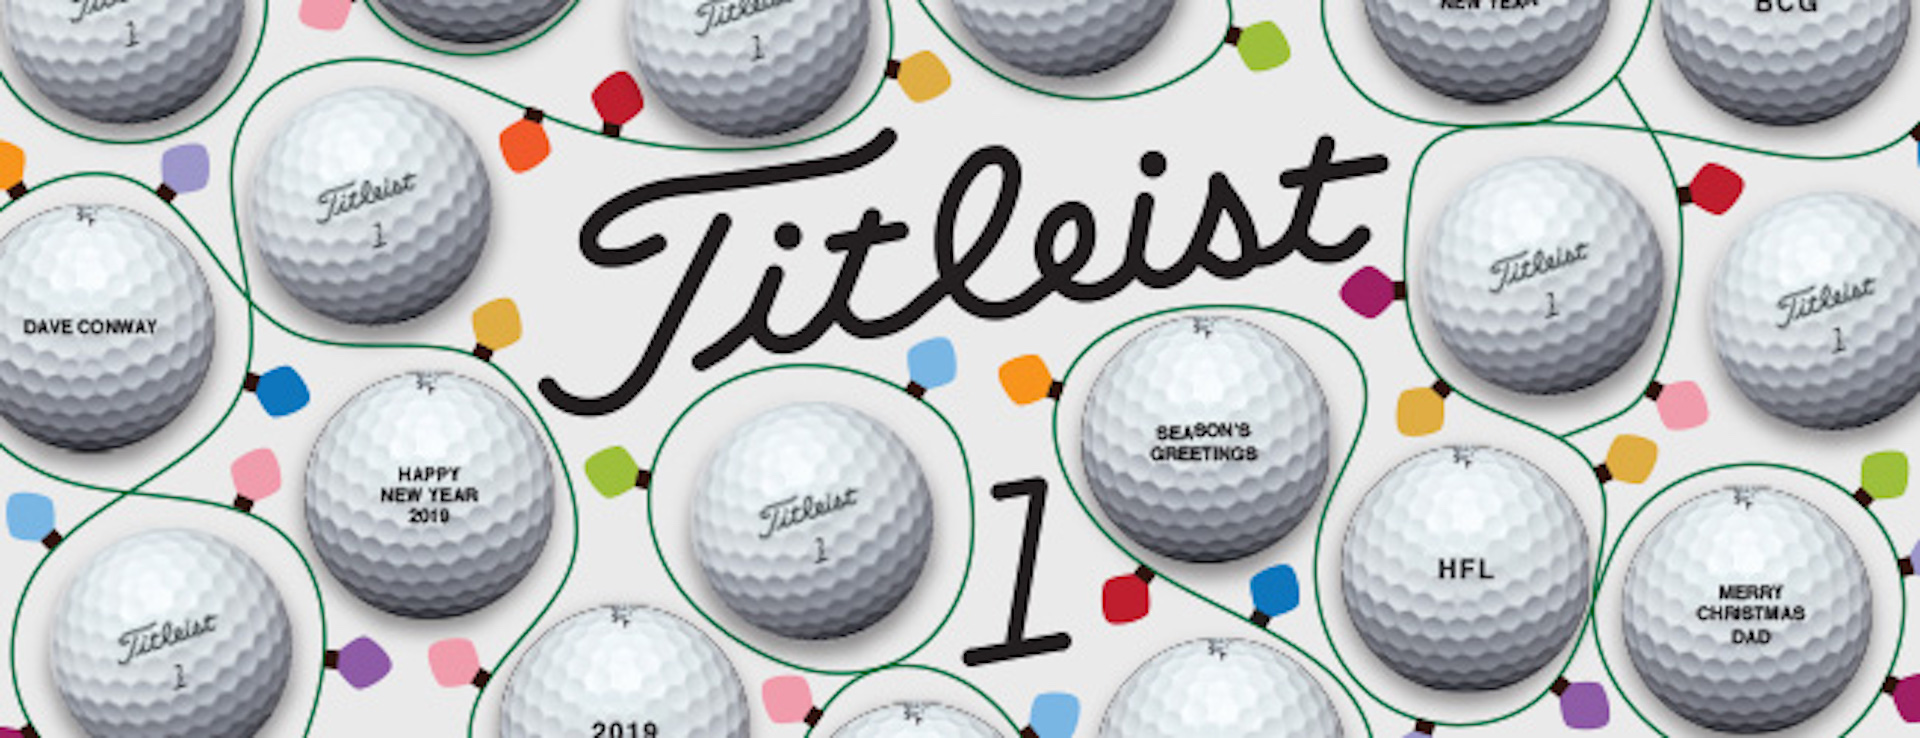 Titleist to offer festive free personalisation